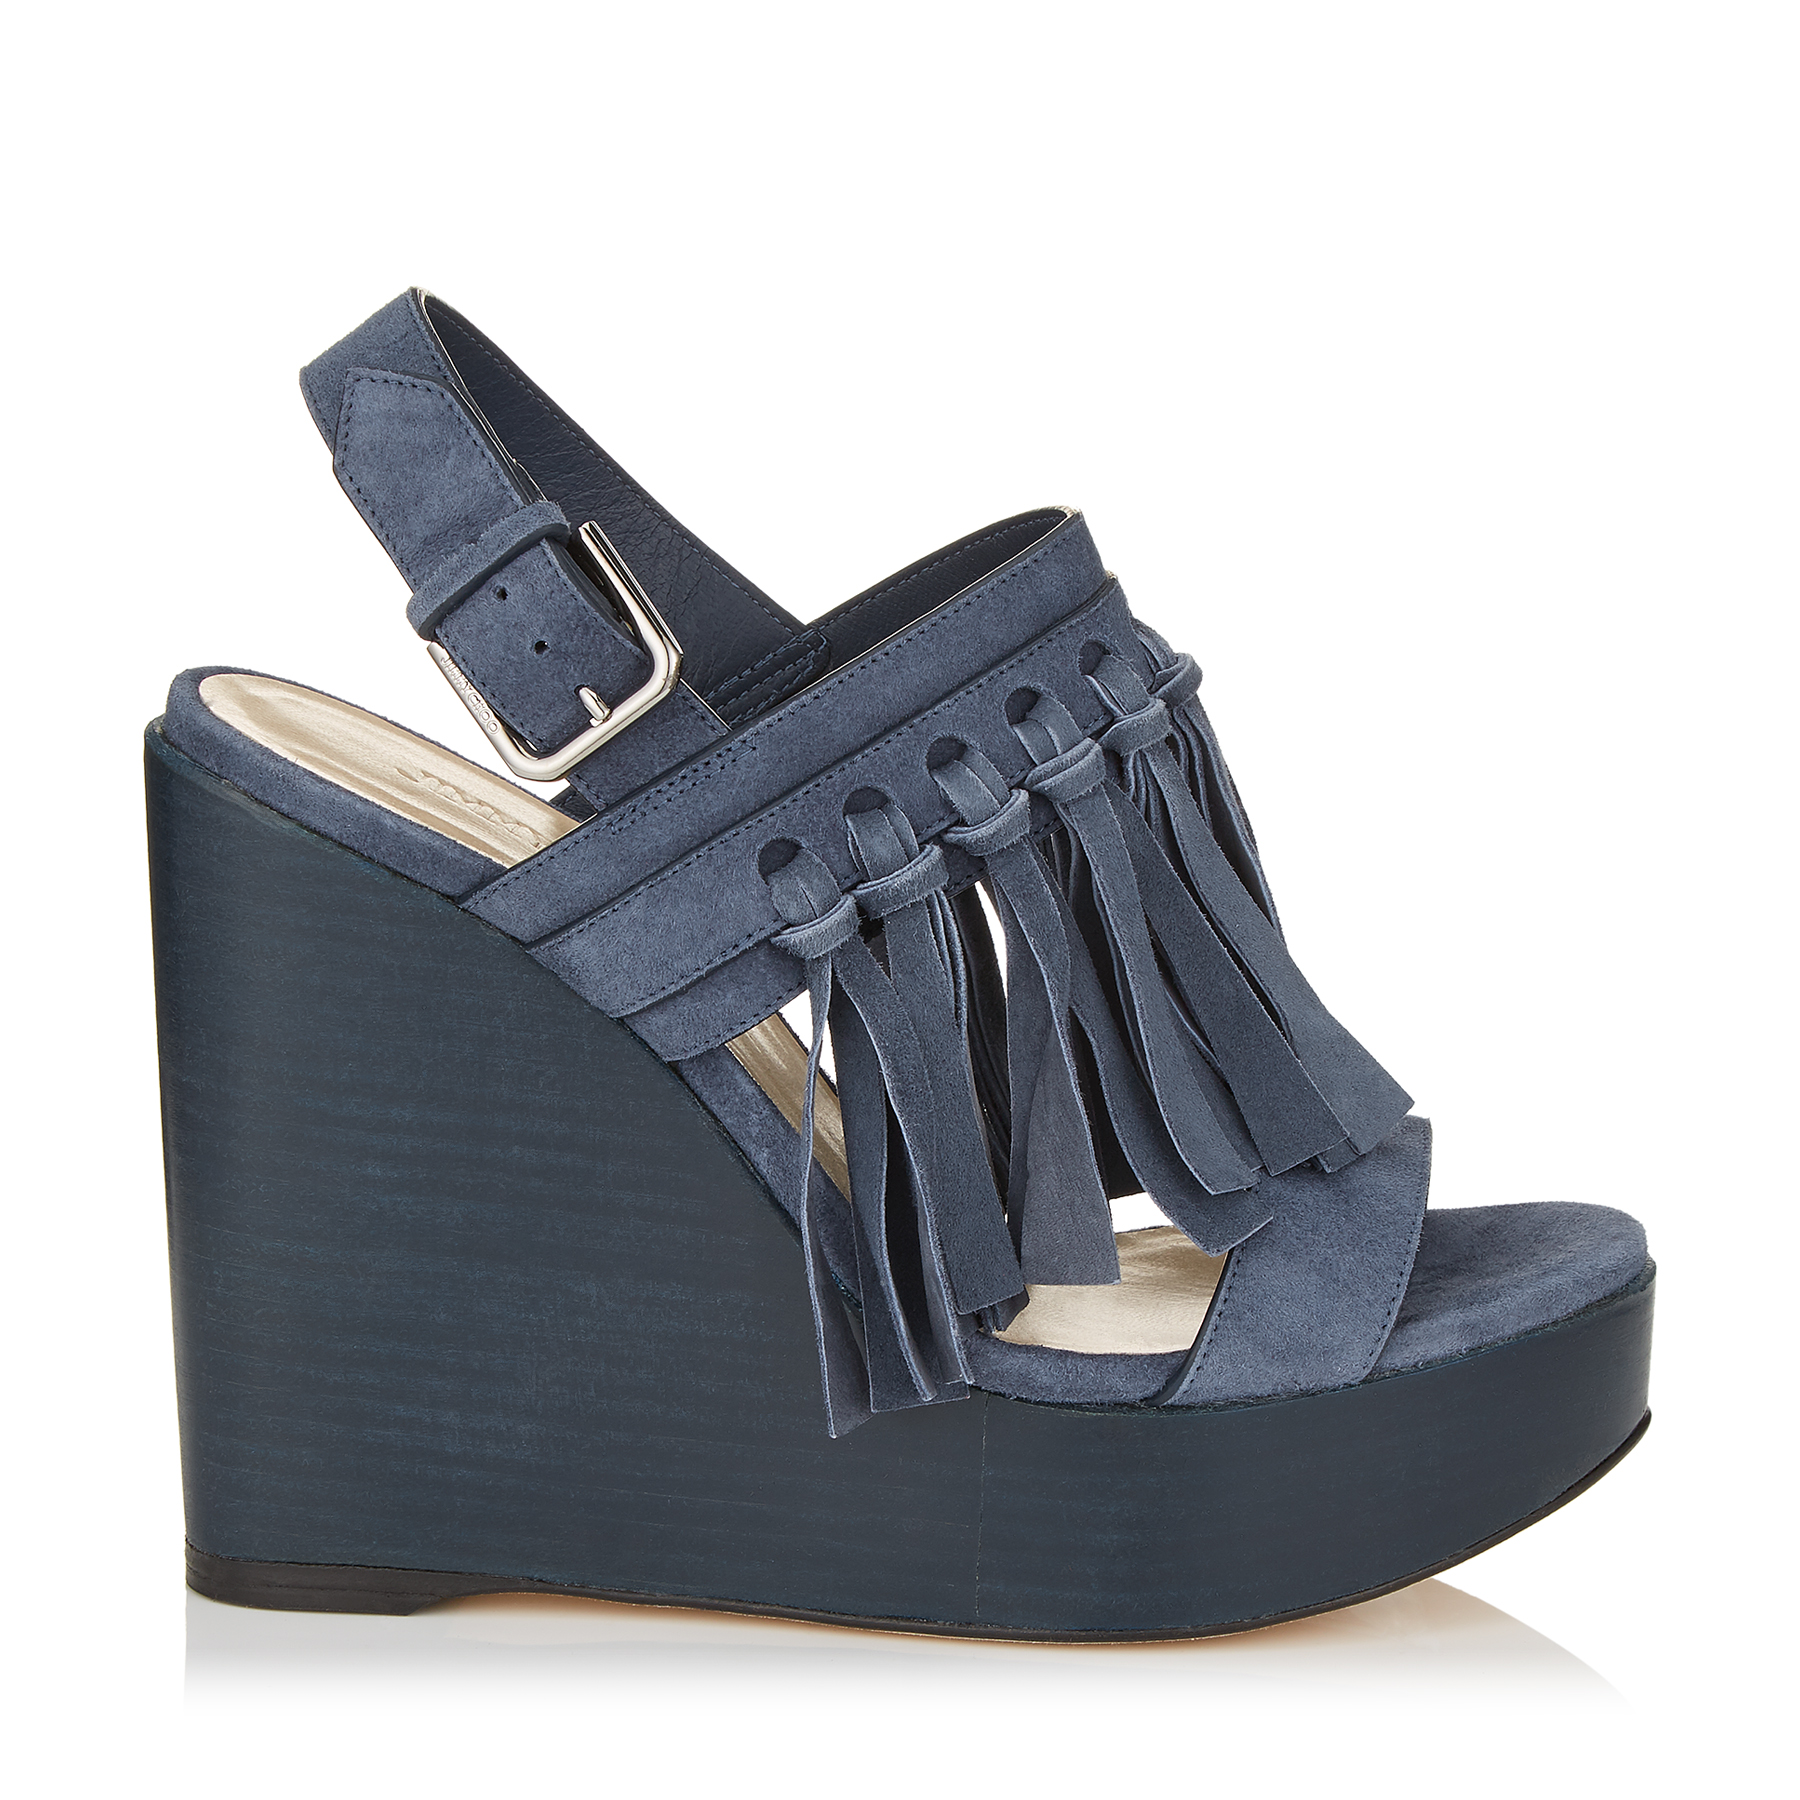 NYA 120 Stormy Blue Suede Wedges with Fringing by Jimmy Choo